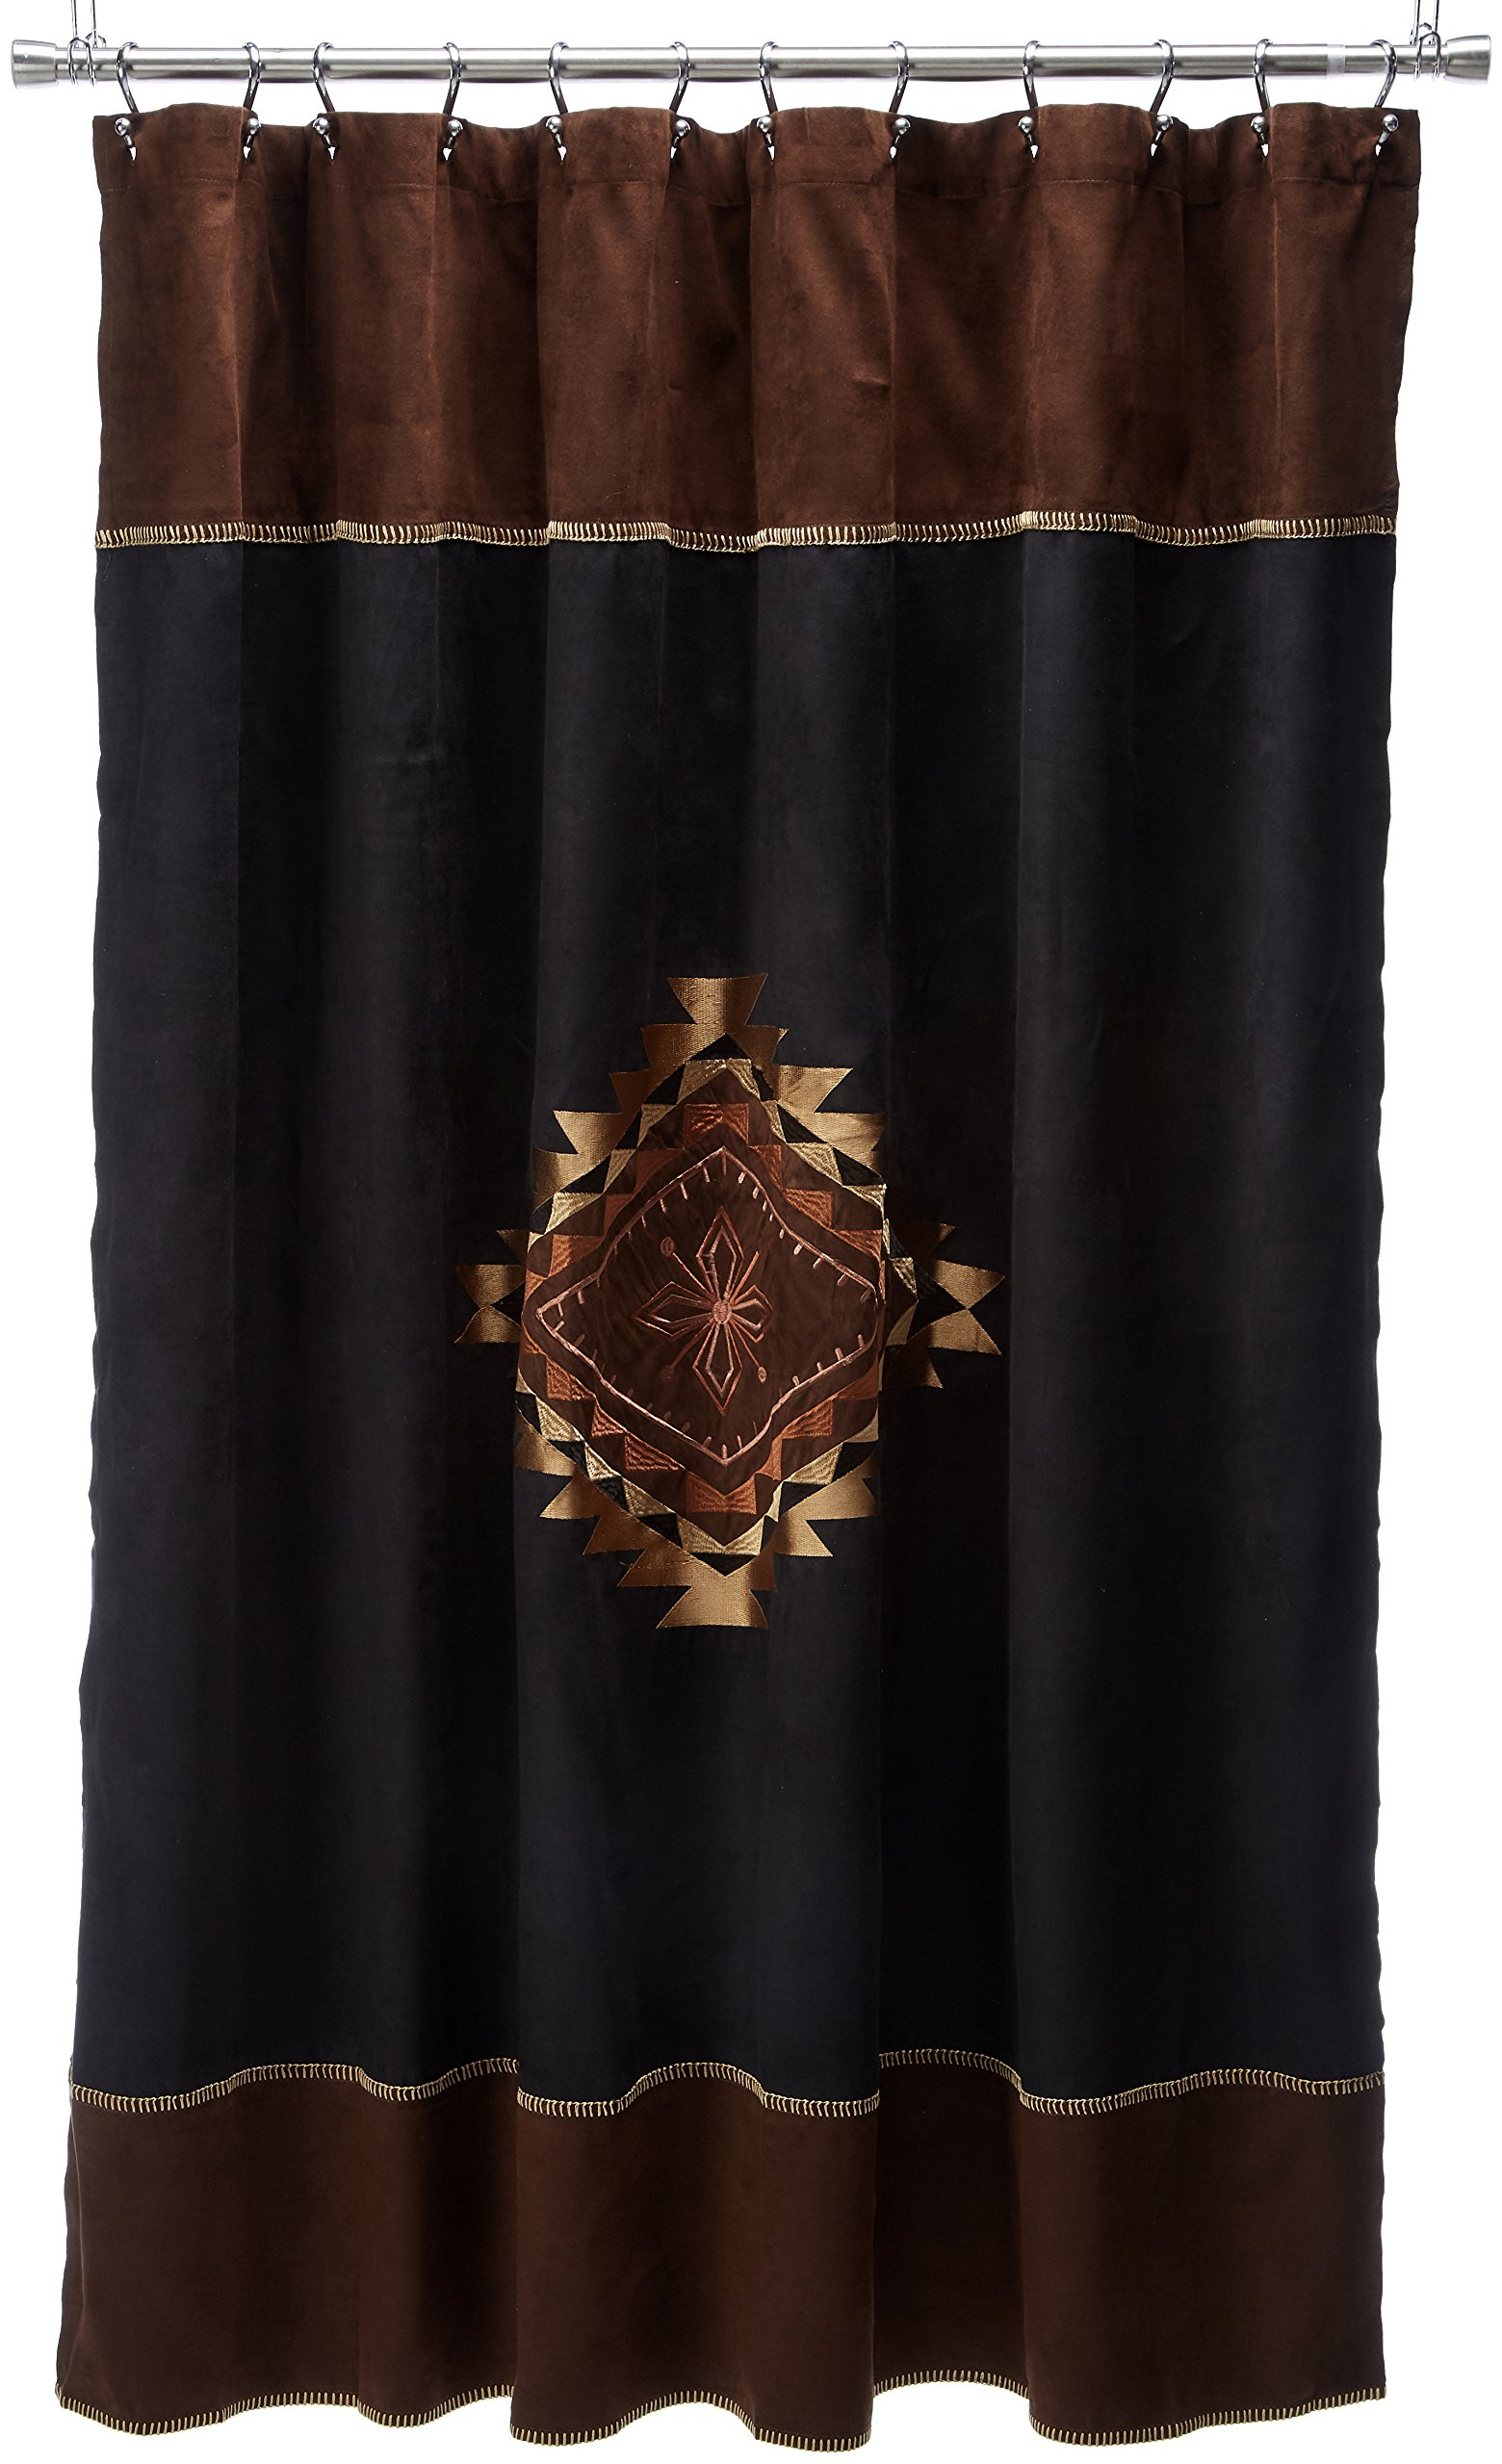 Avanti Linens Mojave72'' x 72'' Shower CurtainBrown and Black Suede Fabric